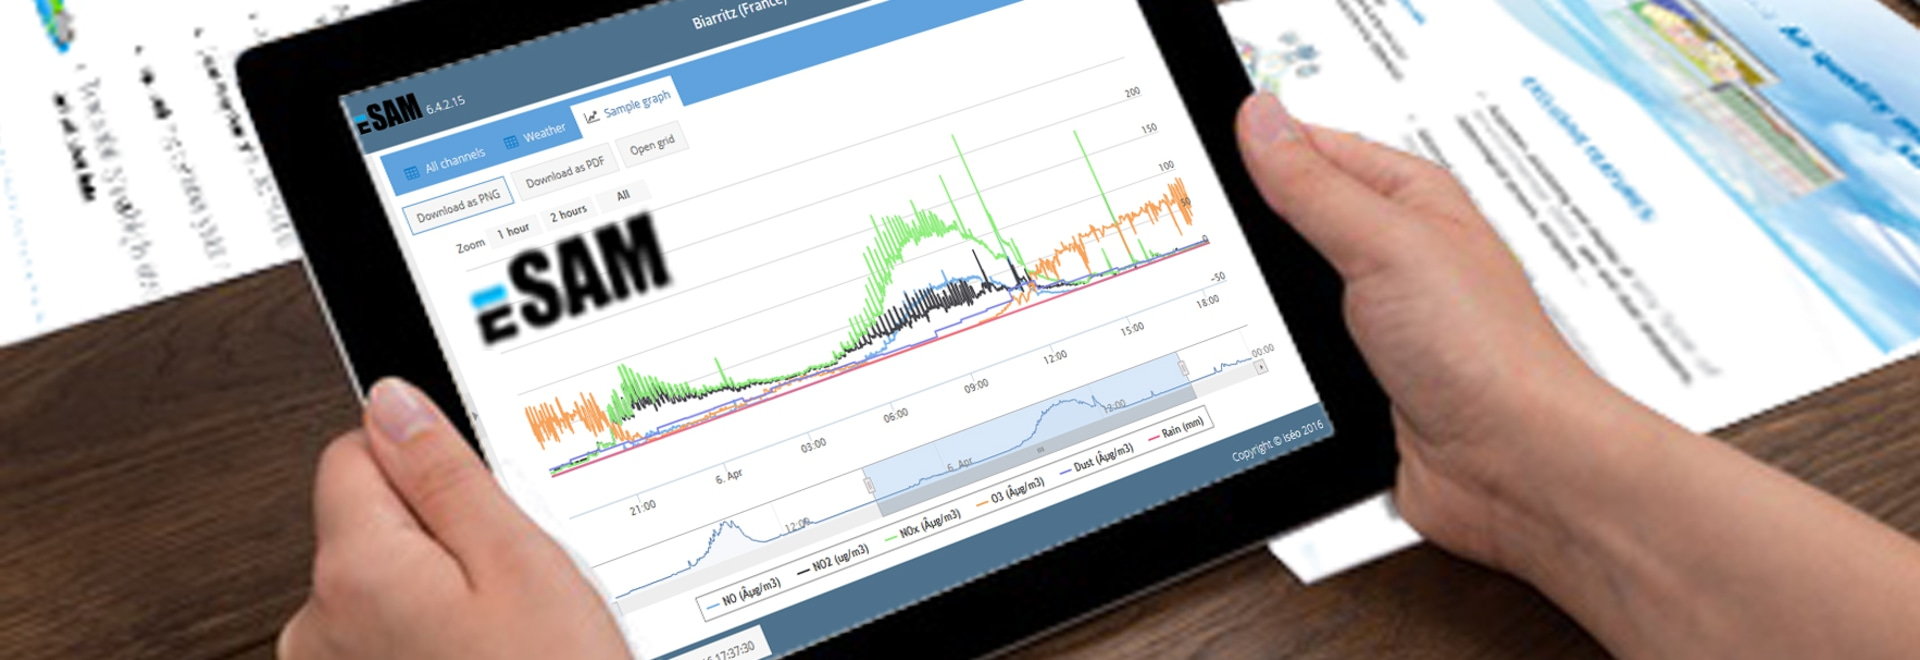 New Data Acquisition and Handling System for Air Pollution Monitoring eSAM